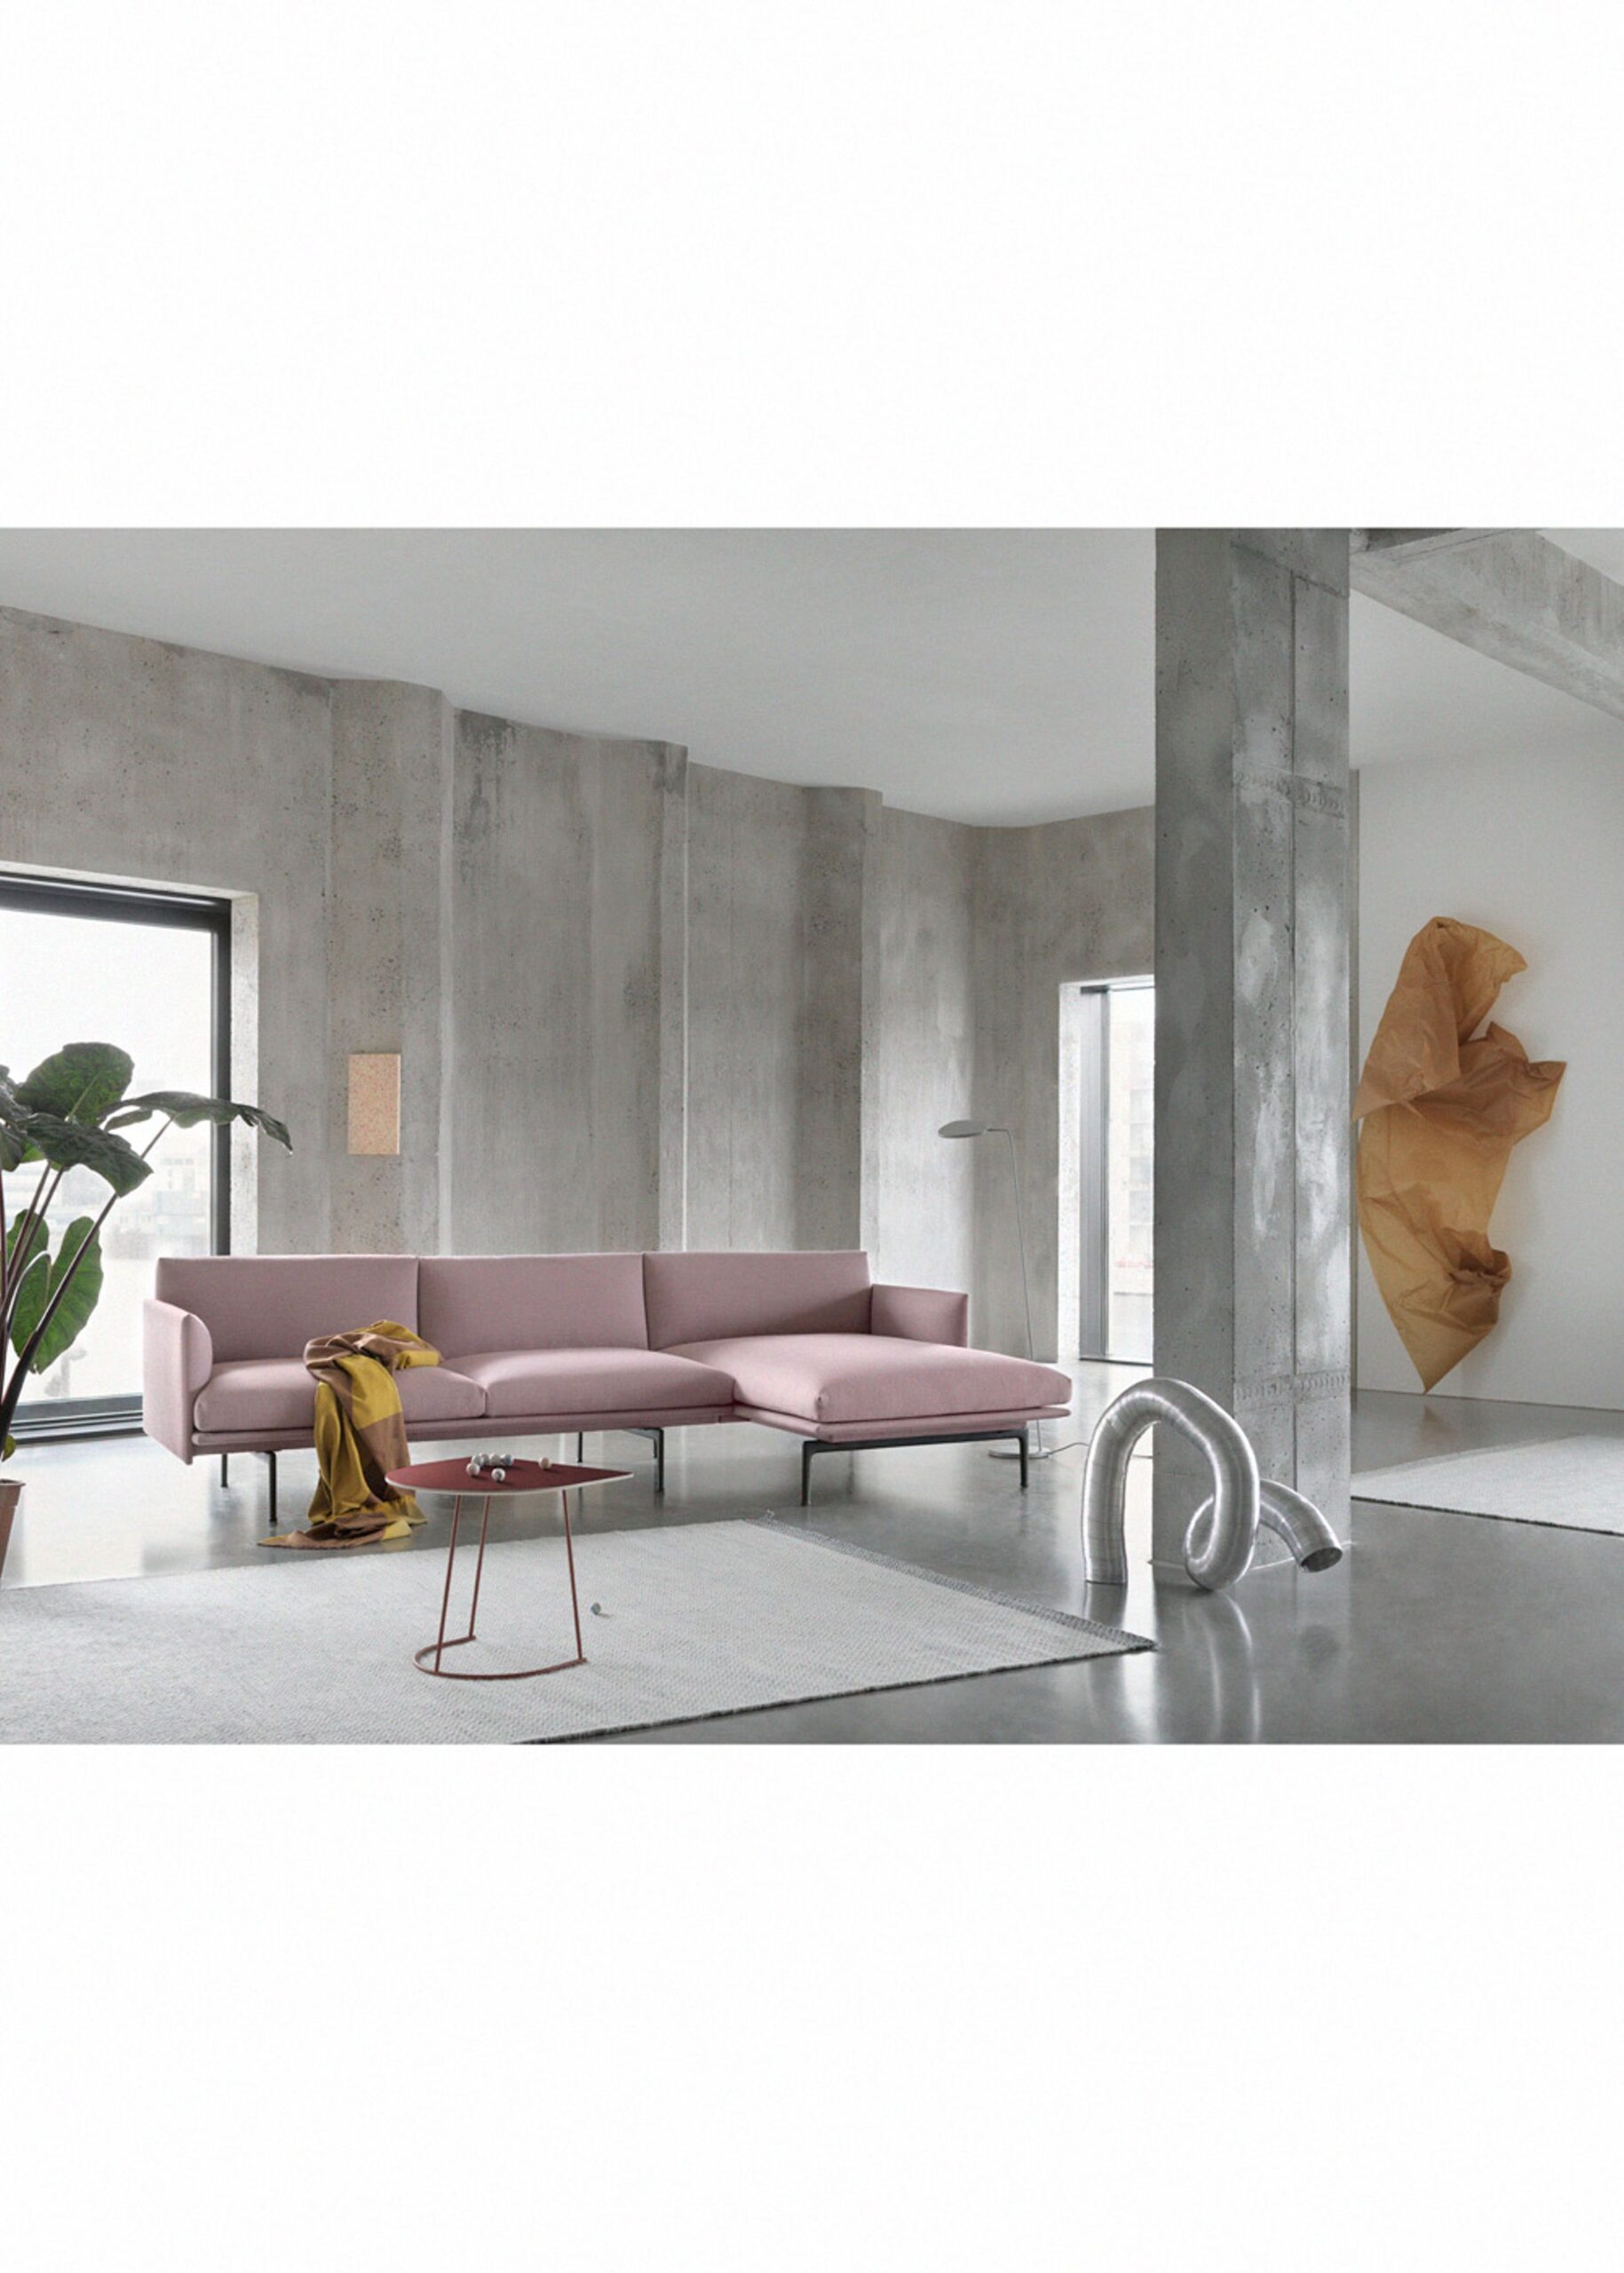 Full Size of Muuto Sofa Compose Review Connect Rest Sale 2 Seater System Outline 3 Furniture Uk Modular Around Sofabord Xl Chaise Lounge Right 1 Sitzer U Form Xxl Hussen Sofa Muuto Sofa